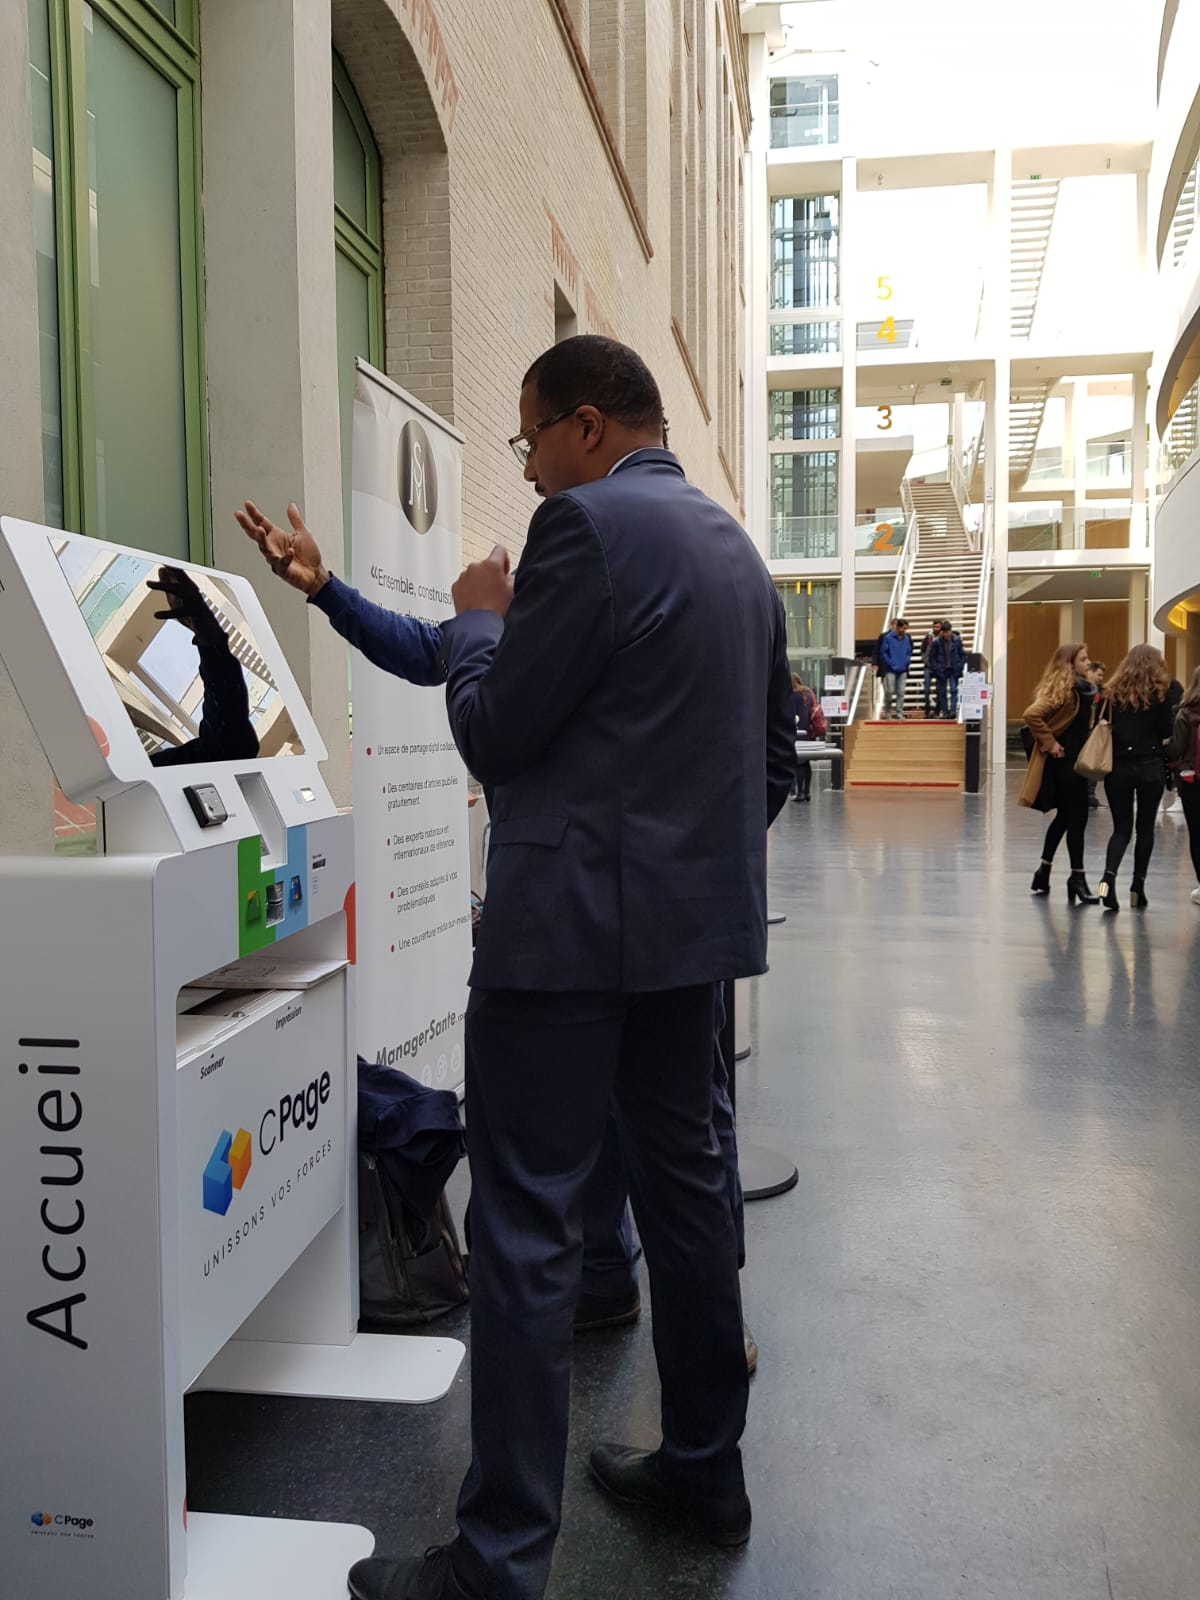 IPM France-healthcare Meeting-Cpage- interactive kiosk- health-ikiosk